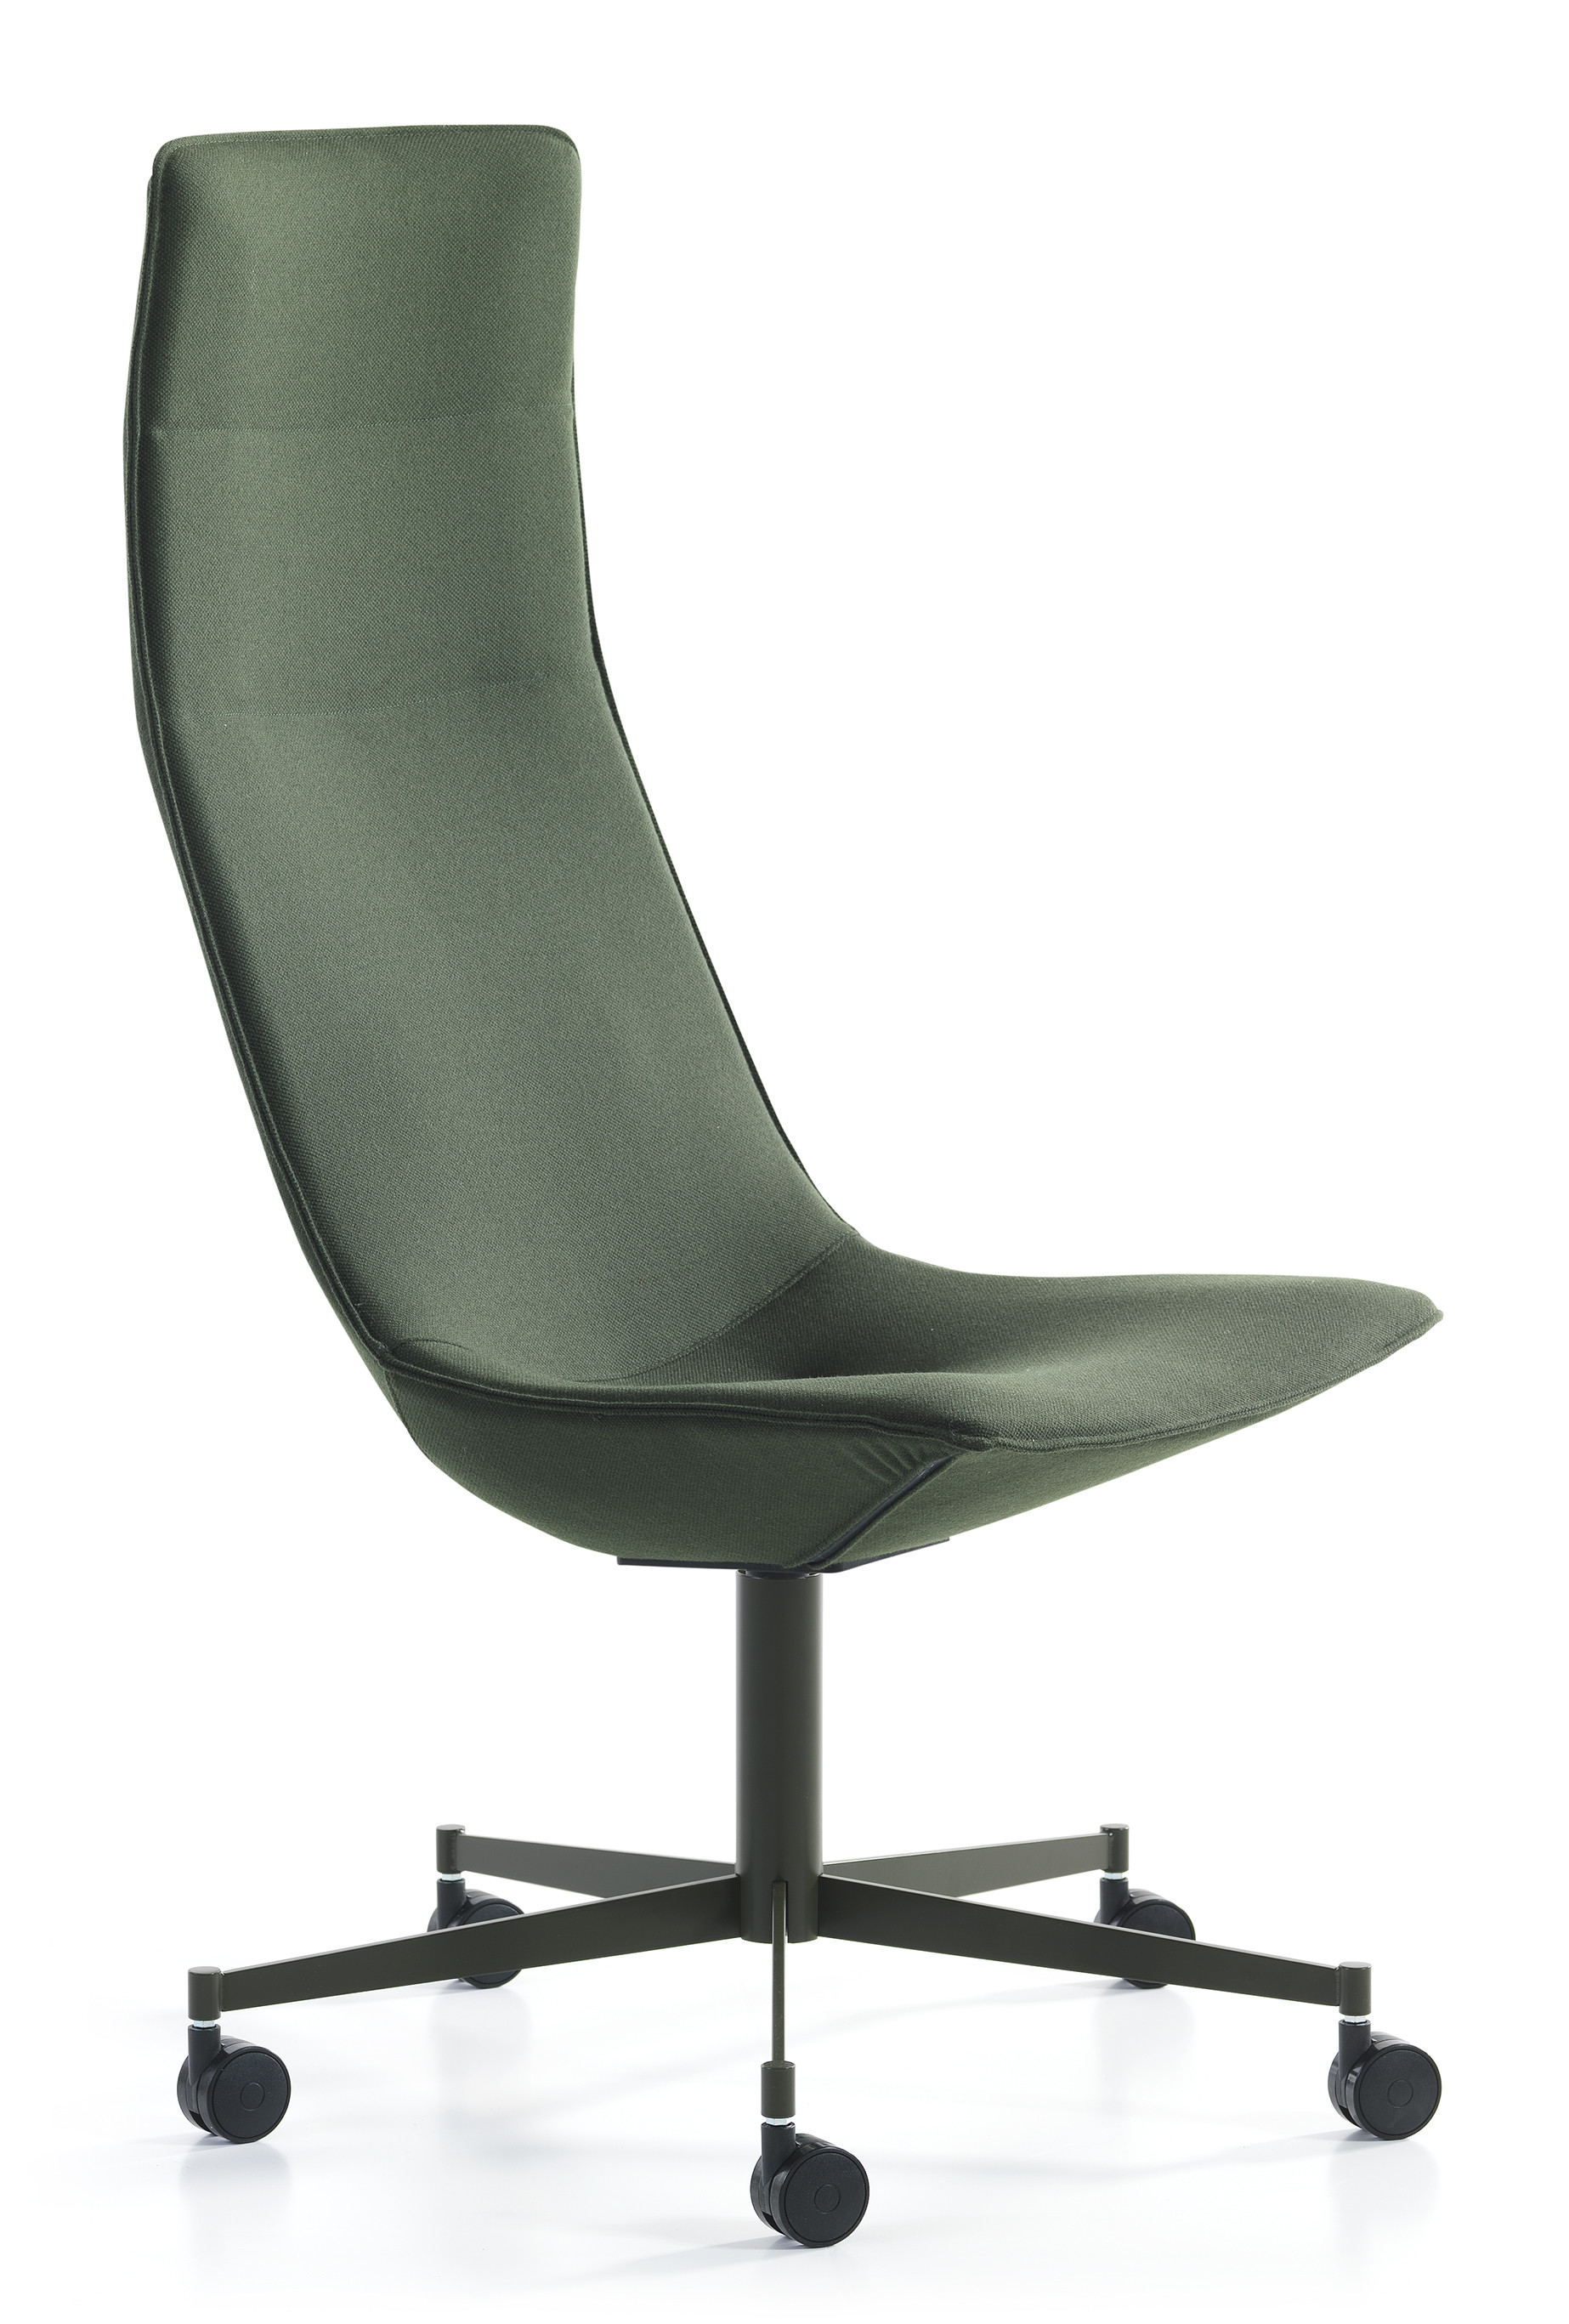 Comet Xl Chairs Amp Armchairs Lammhults